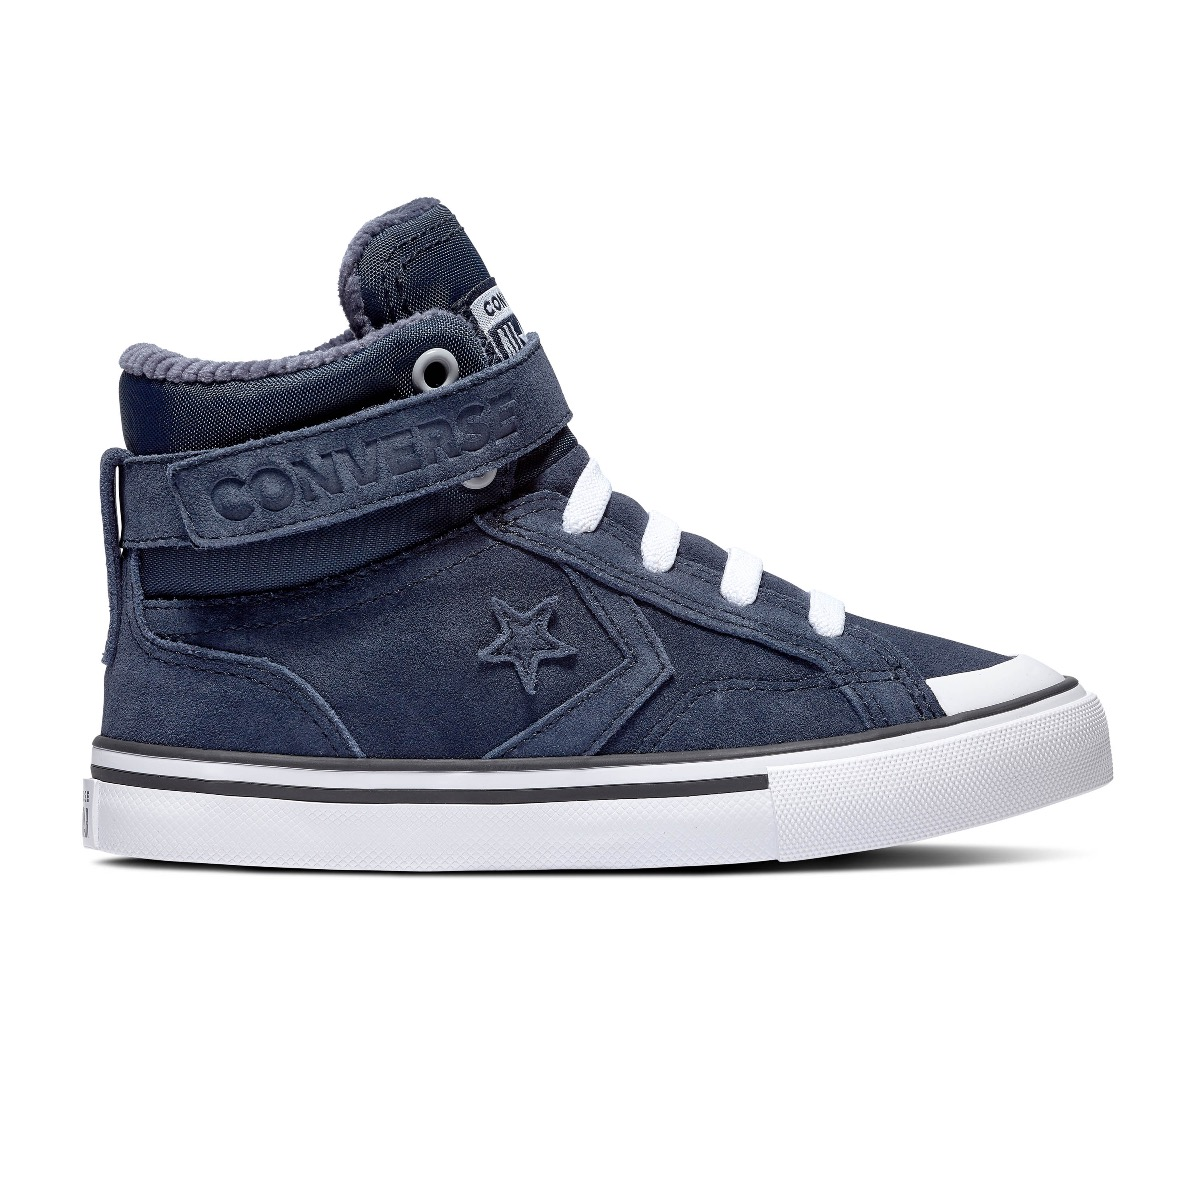 Converse All Stars Space Ride 665279C Blauw - Wit - Grijs-37 maat 37